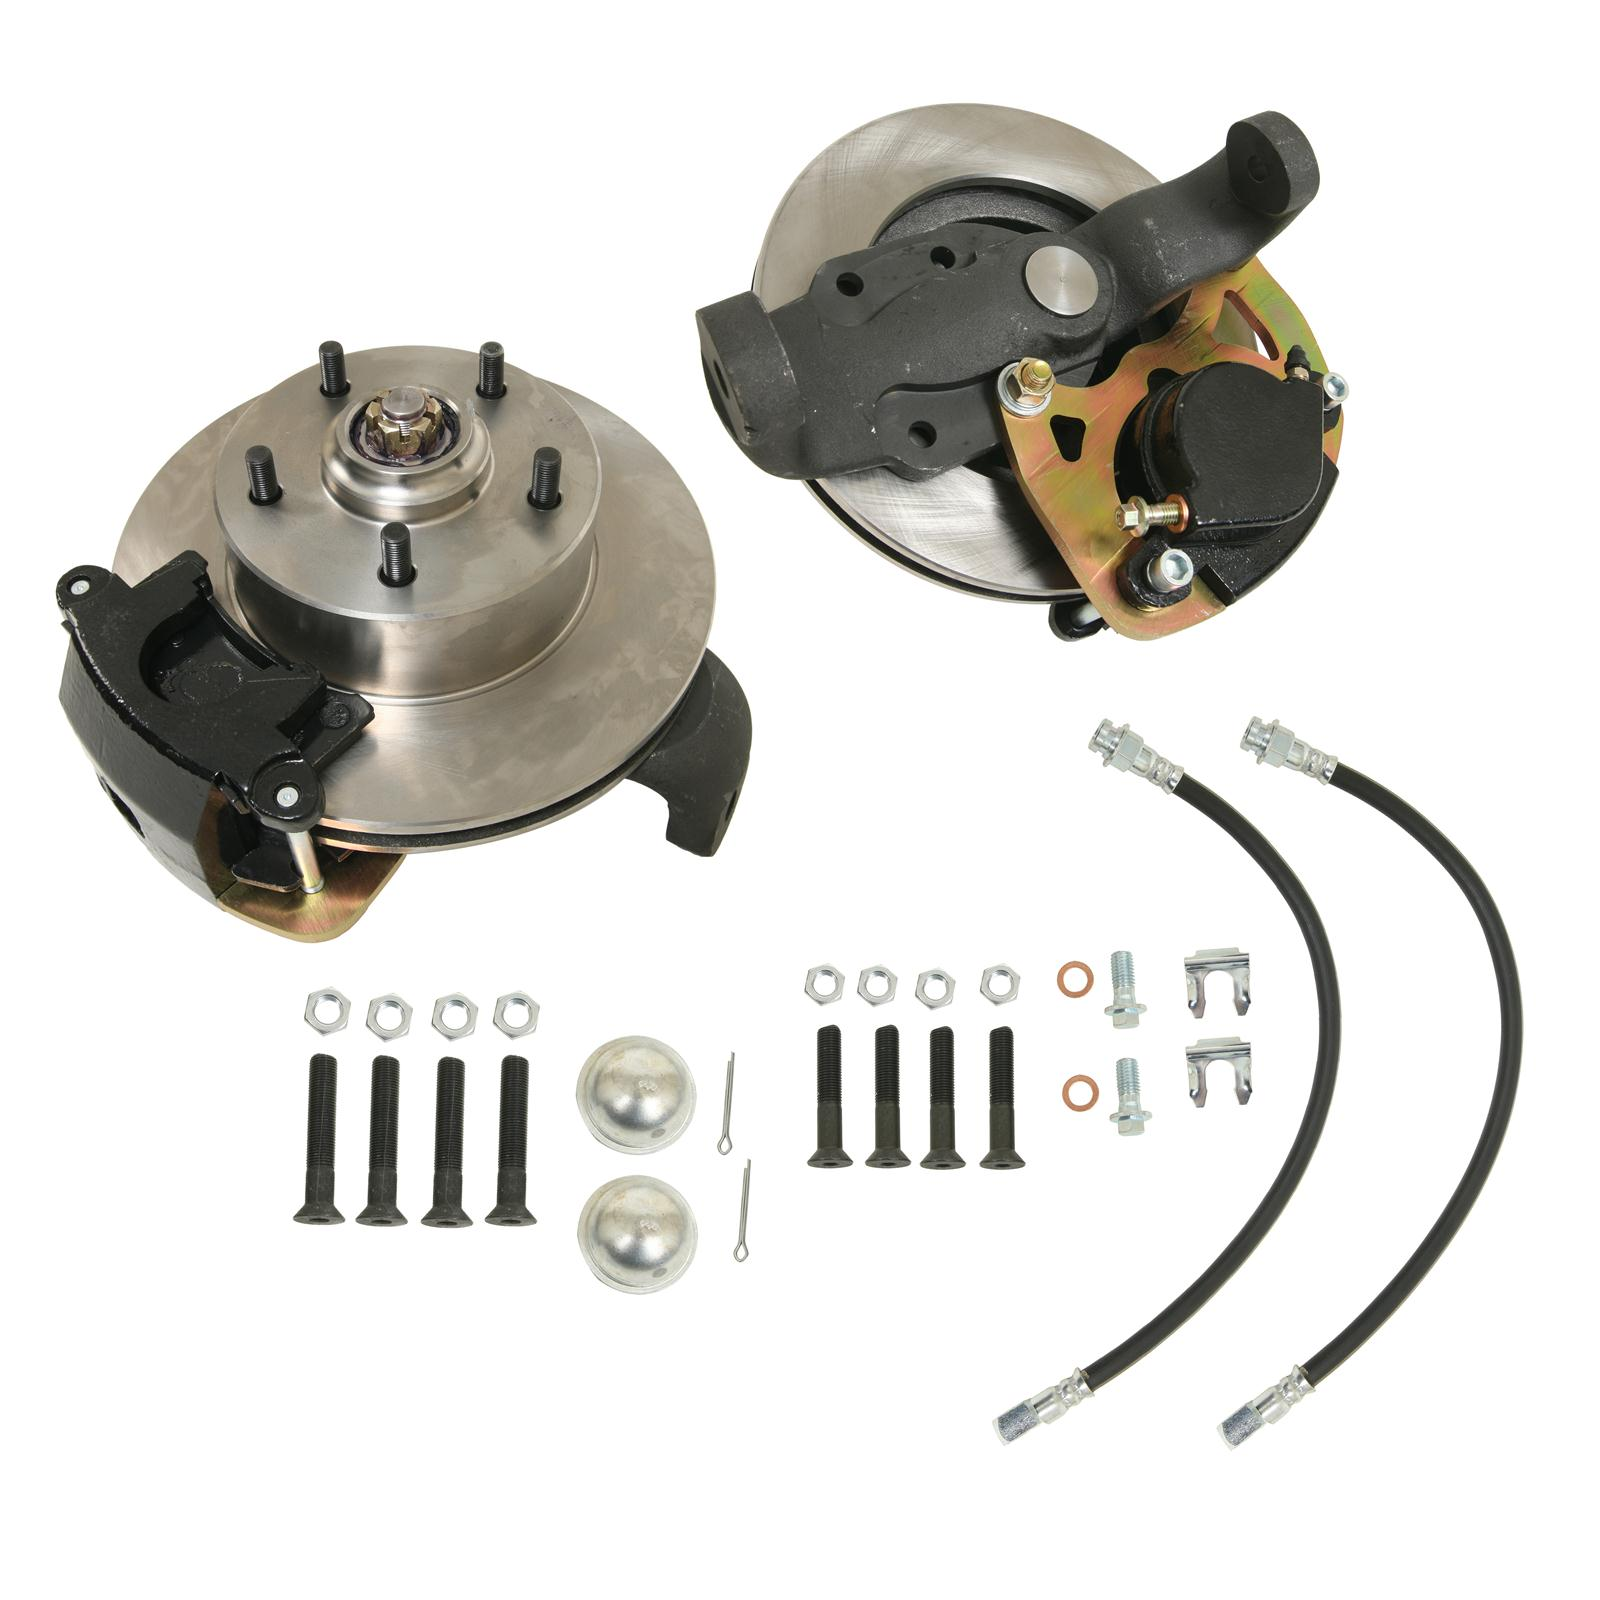 1968 CHEVROLET CAPRICE Classic Performance Drop Spindle Brake Kits  5870SWBK-D